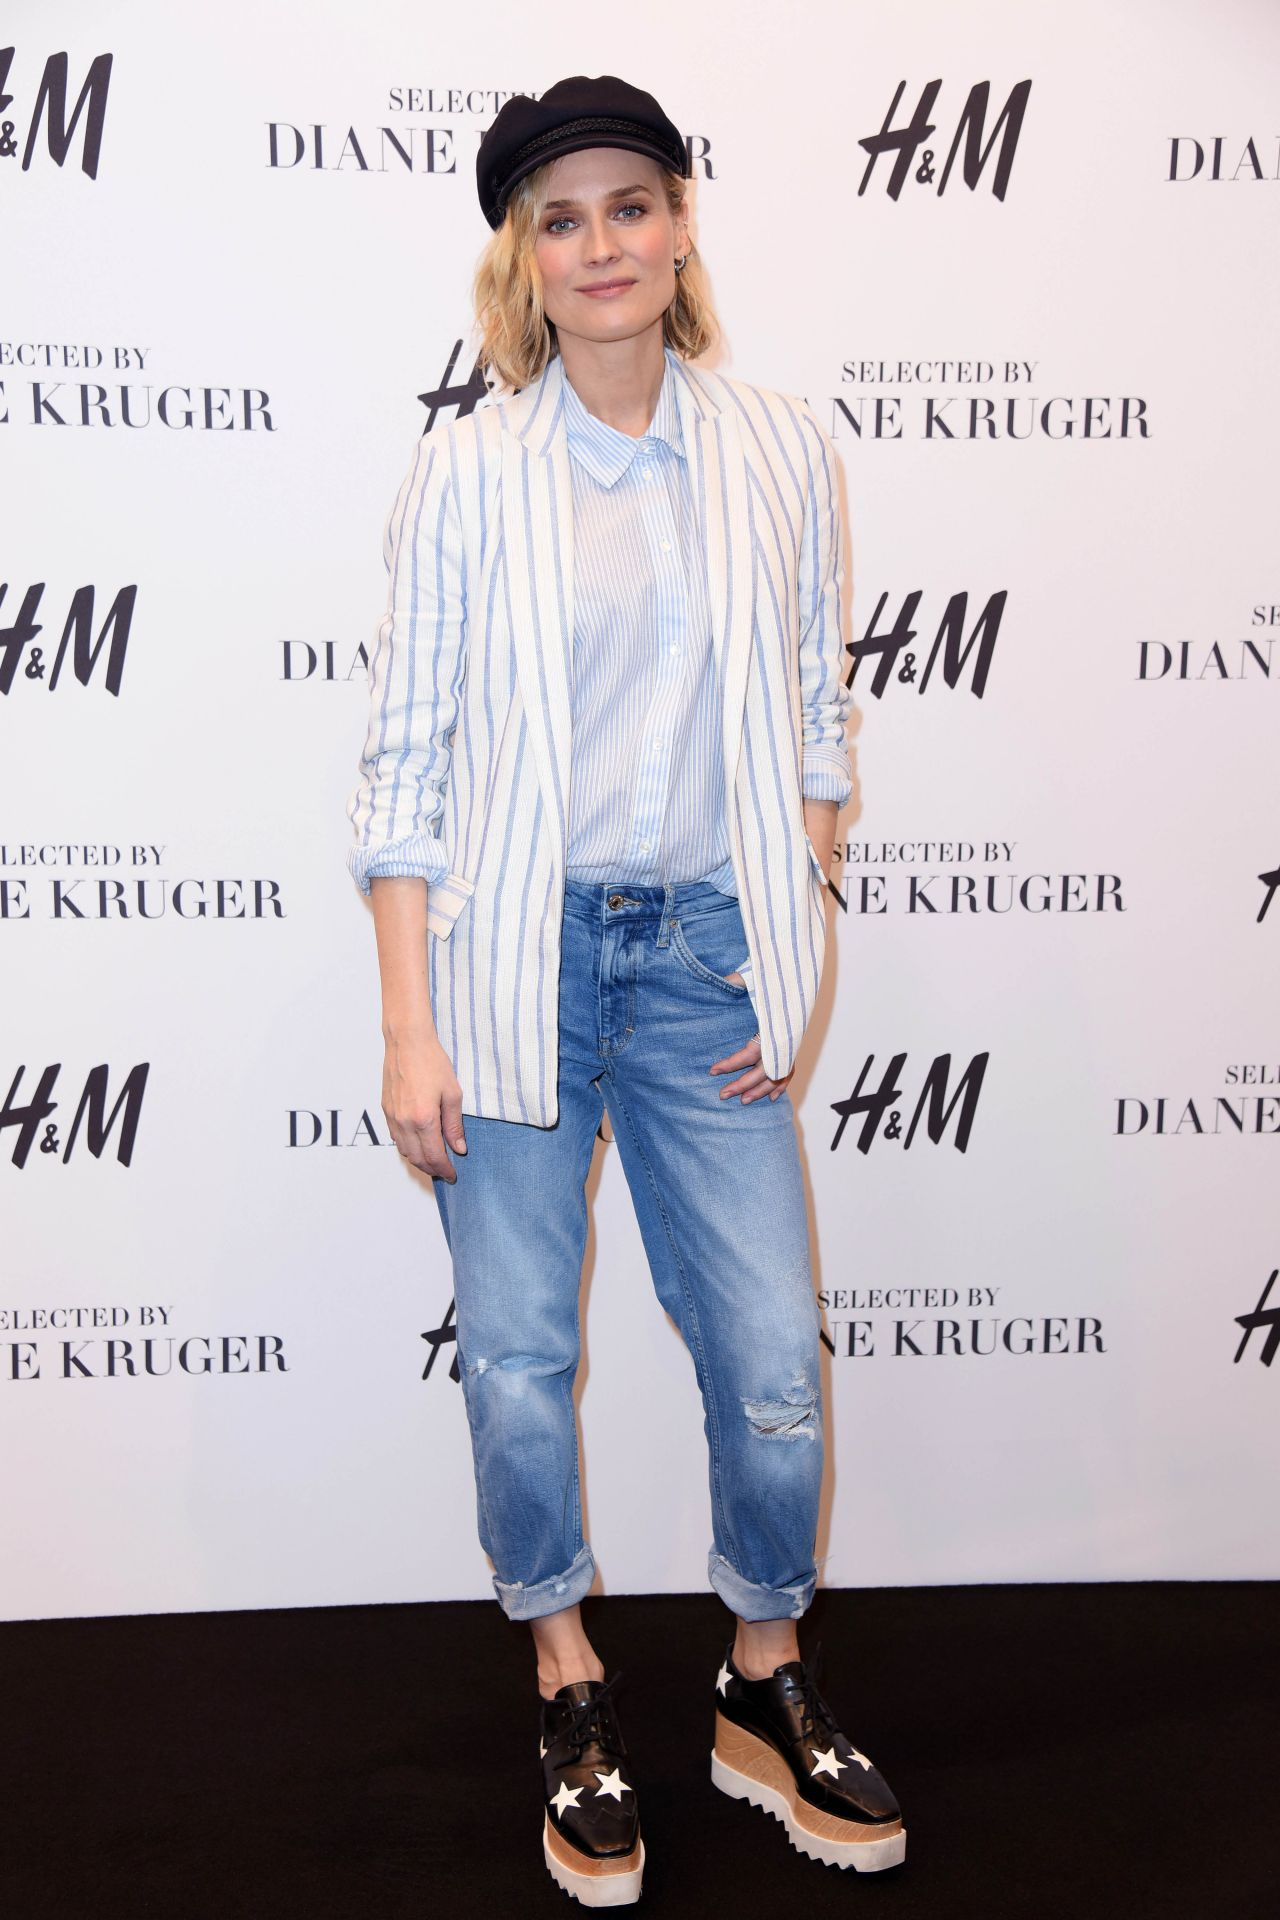 http://celebmafia.com/wp-content/uploads/2018/04/diane-kruger-launch-of-her-h-m-collection-in-berlin-04-25-2018-13.jpg